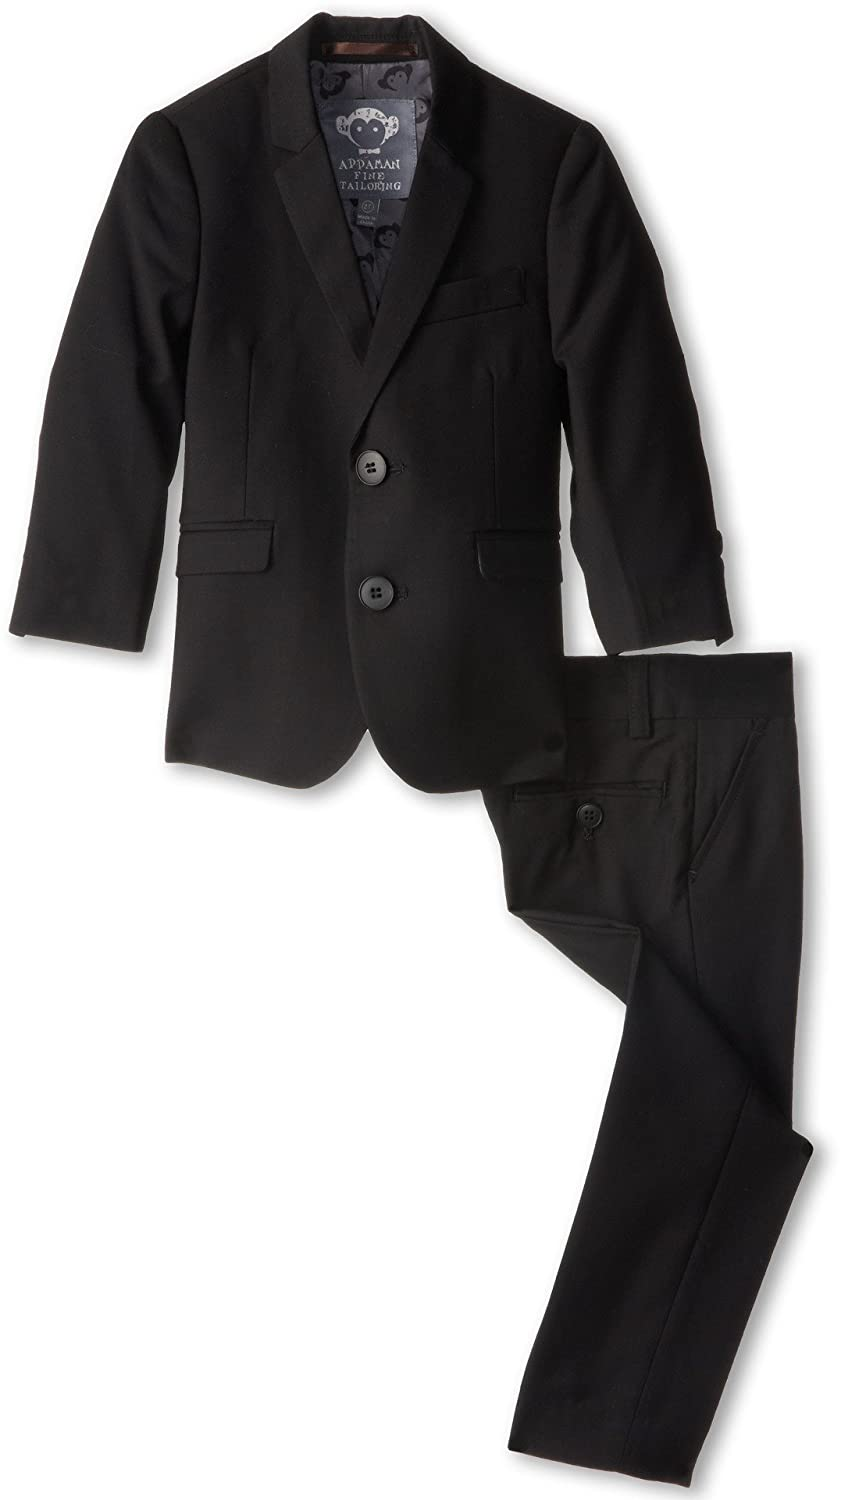 9d59f344bfcf Amazon.com  Appaman Kids Baby Boy s Two Piece Lined Classic Mod Suit ...